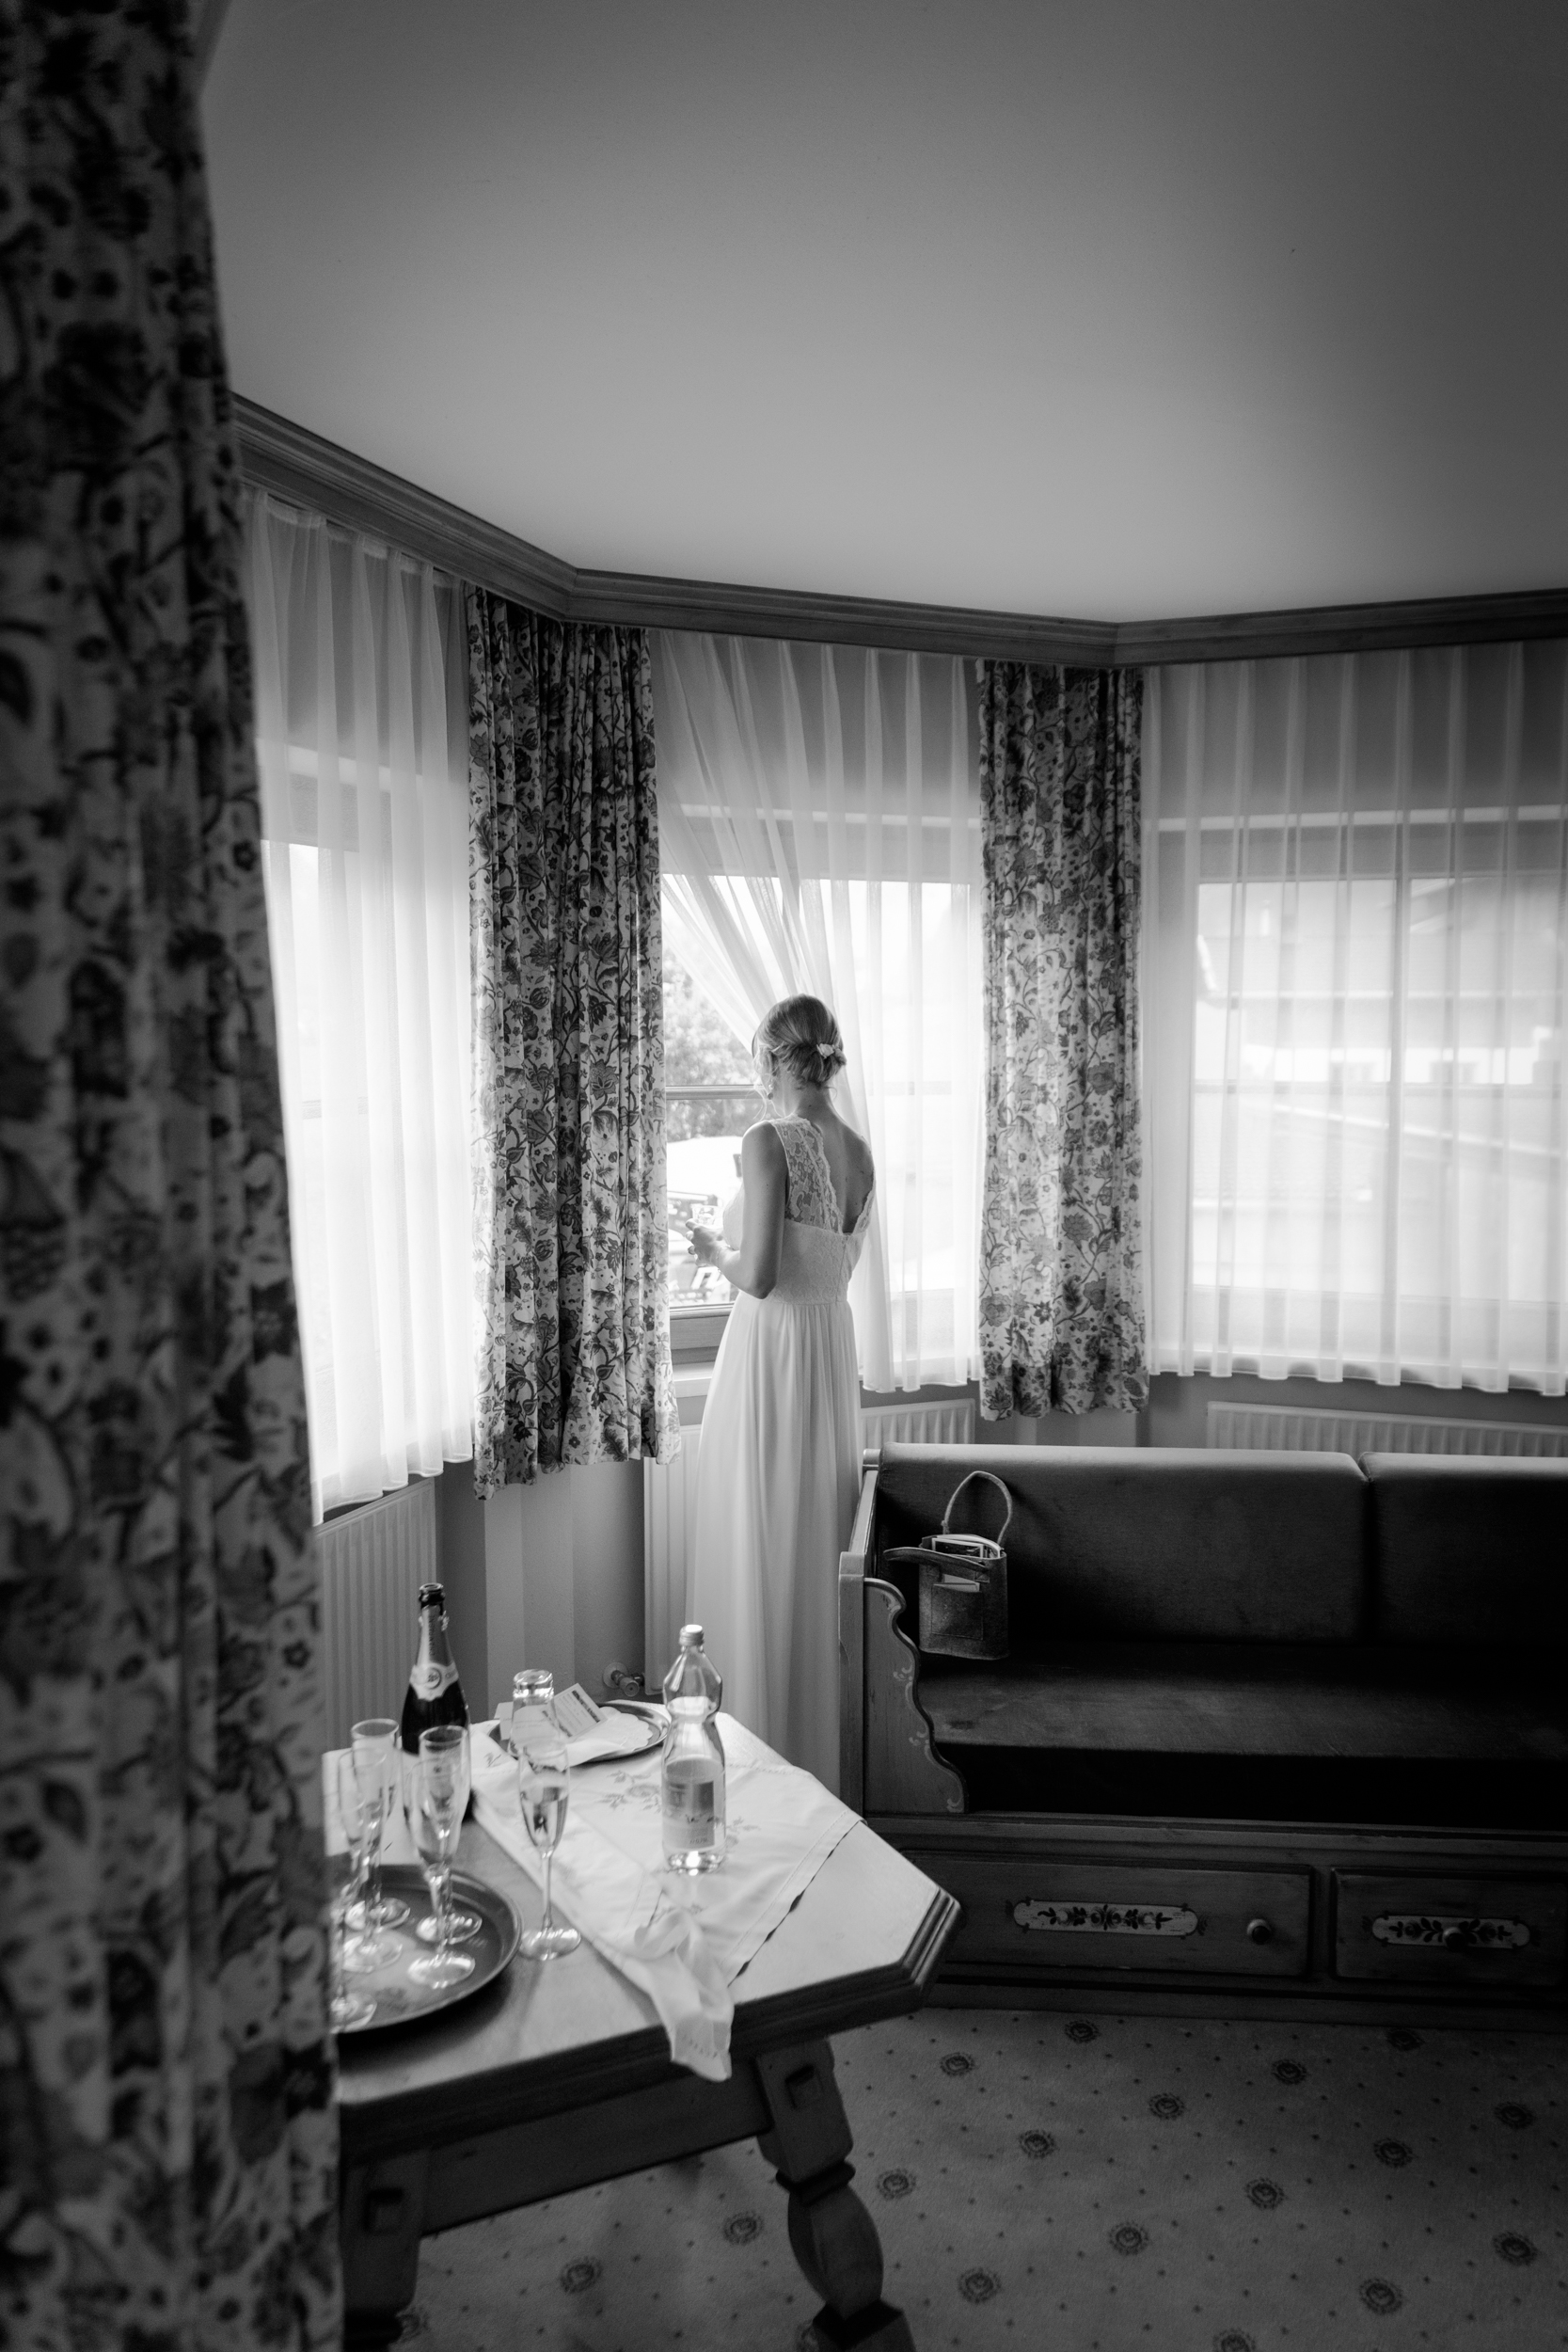 the bride waiting for her carriage to take her to the wedding. Shot with Canon 6D with Tamron 28-75mm f/2.8 @1/200 sec f/3.2 ISO 1600